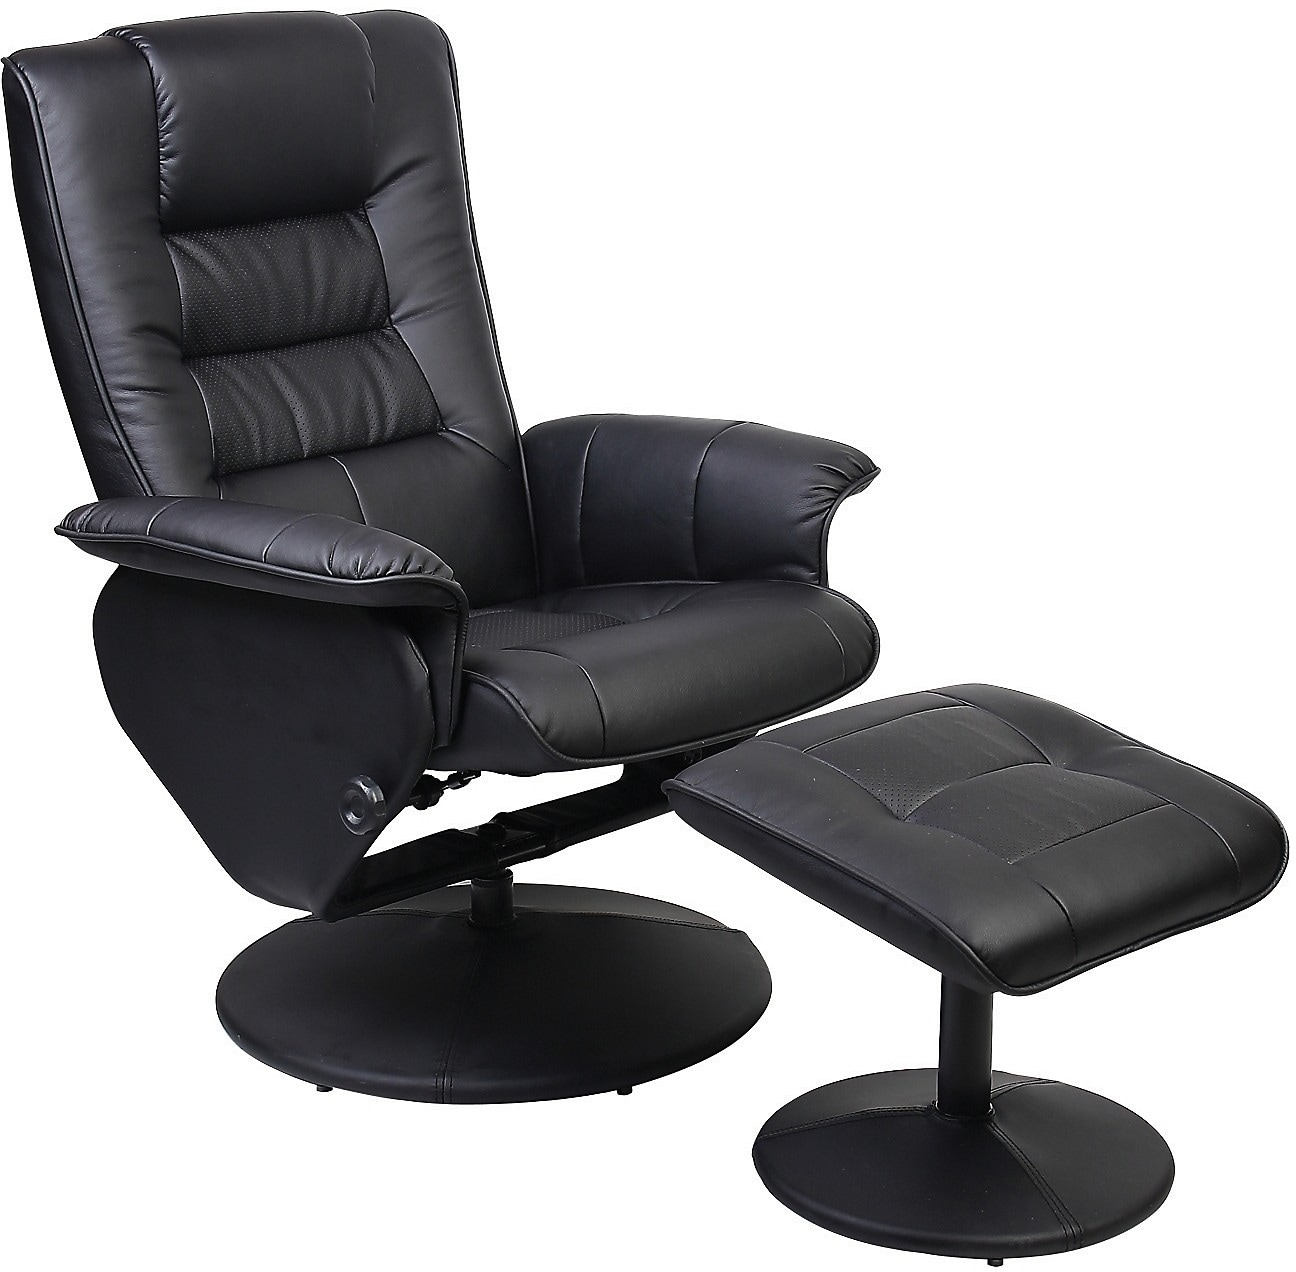 duncan reclining chair w ottoman black the brick